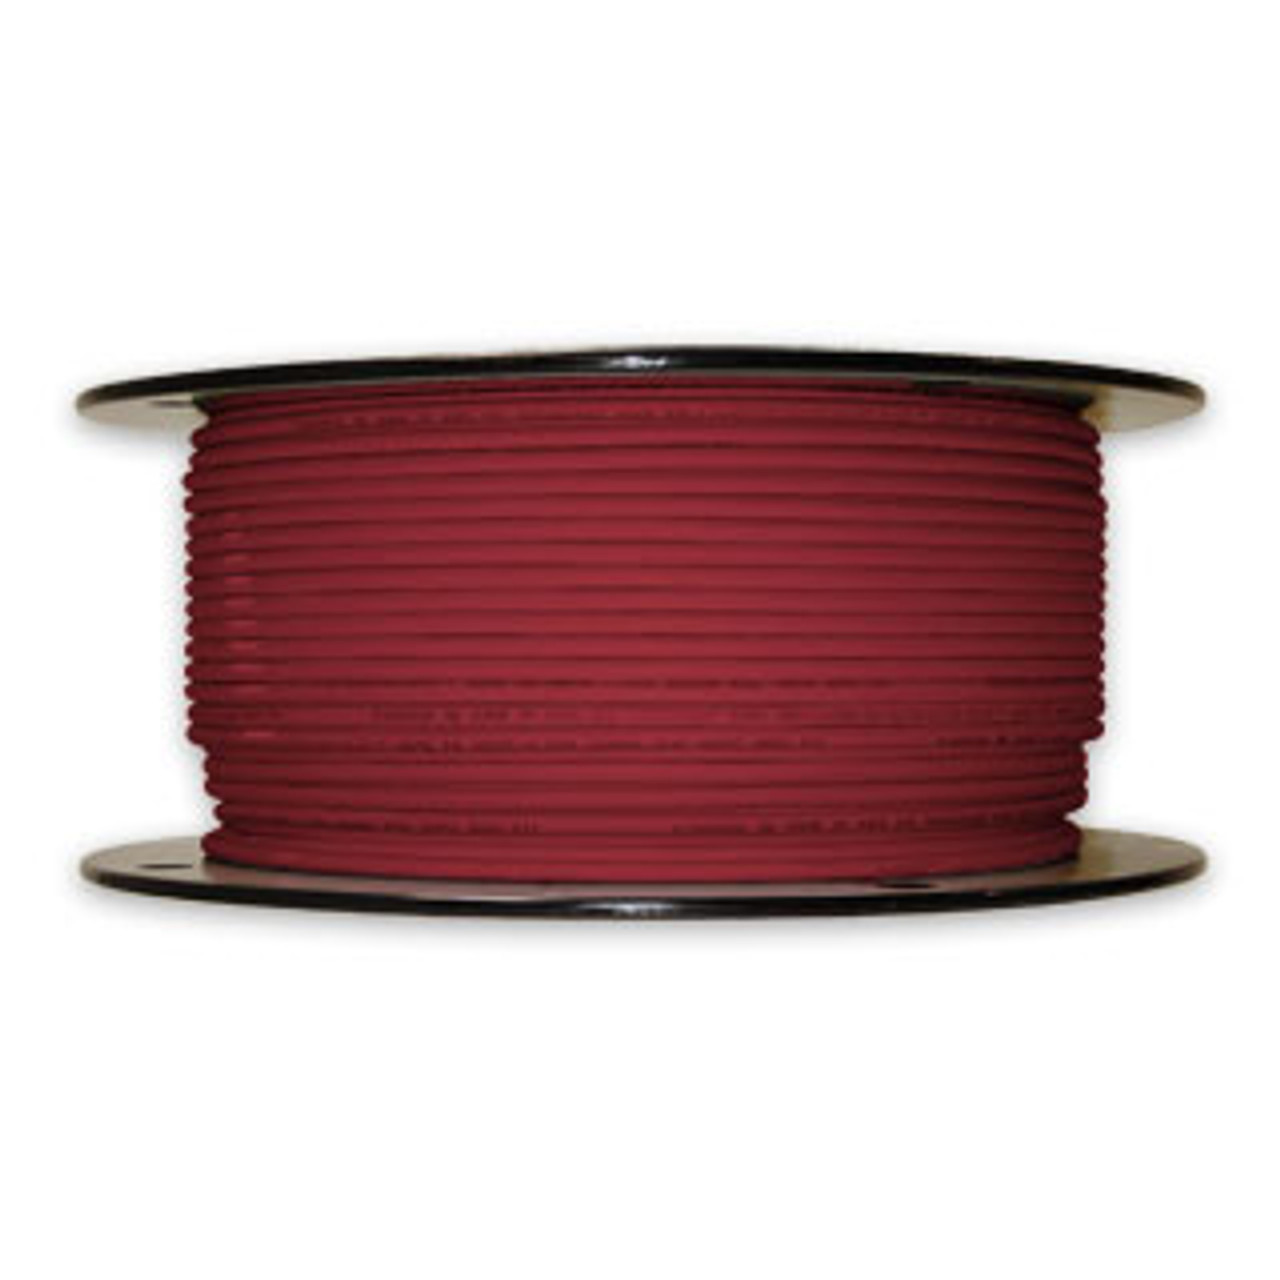 Arctic Ultraflex Cold Weather Flexible Wire 500 Foot Spool 12 AWG Red Single Conductor Wire tinned fine strand 100% copper